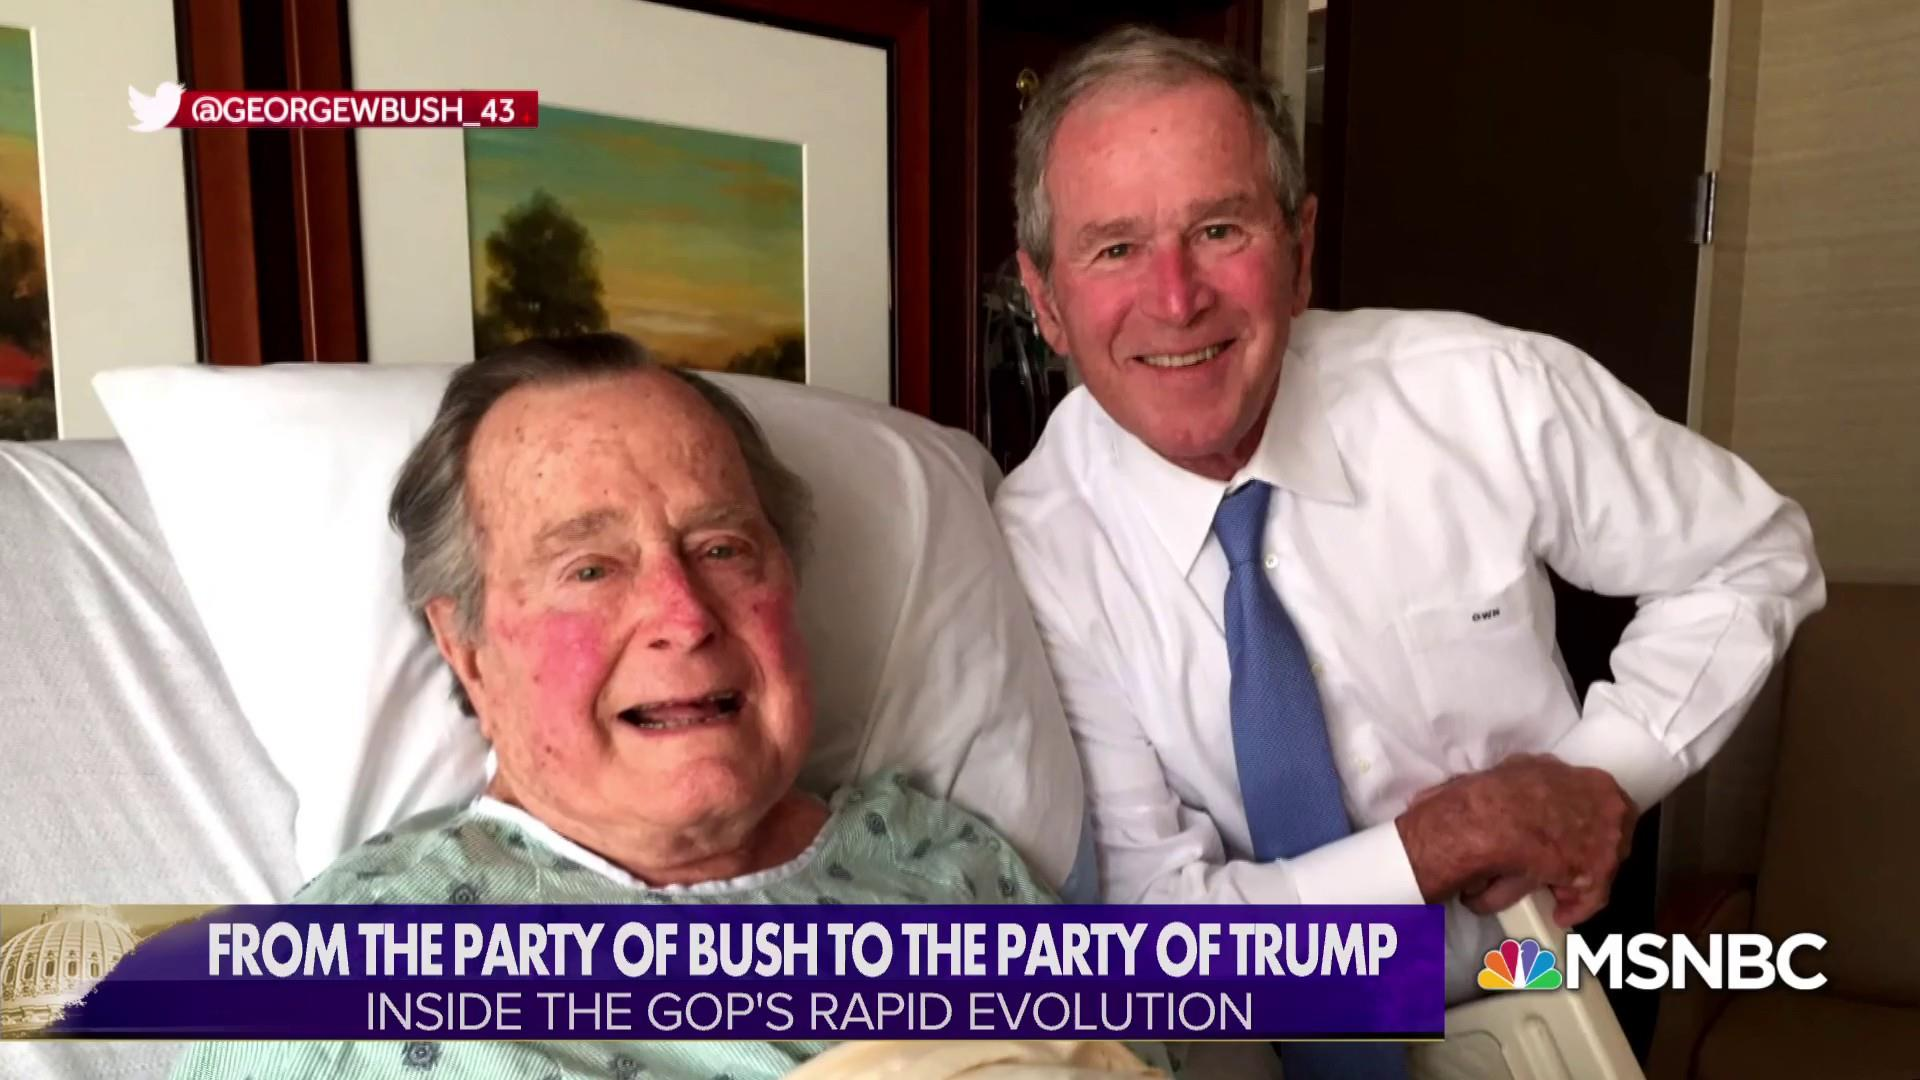 From the Party of Bush to the Party of Trump